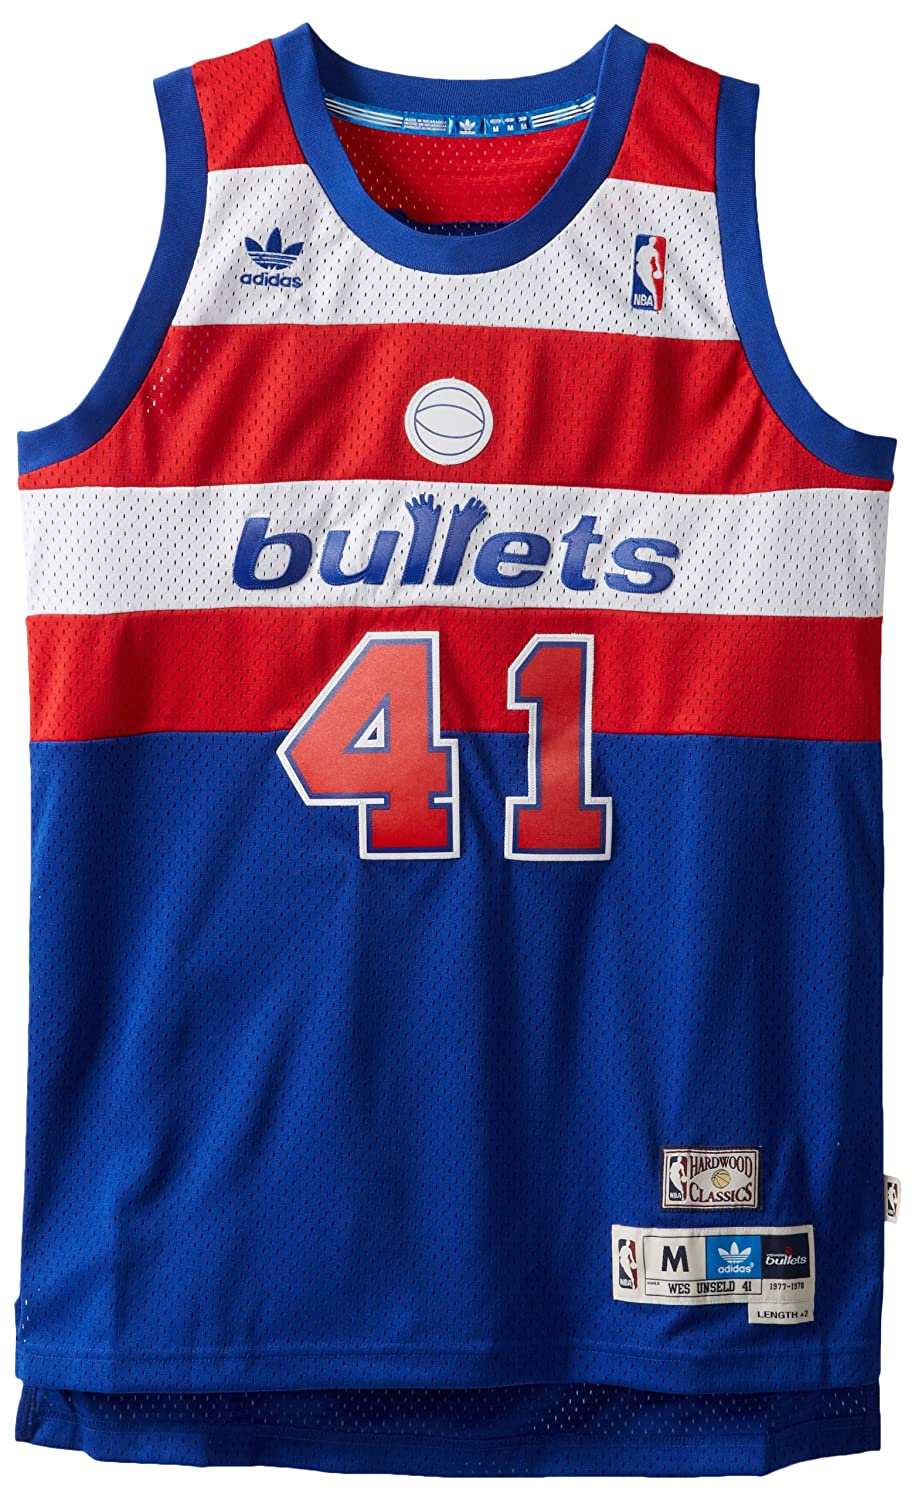 a65322139ea ... coupon code buy nba washington bullets blue swingman jersey wes unseld  41 small online at low